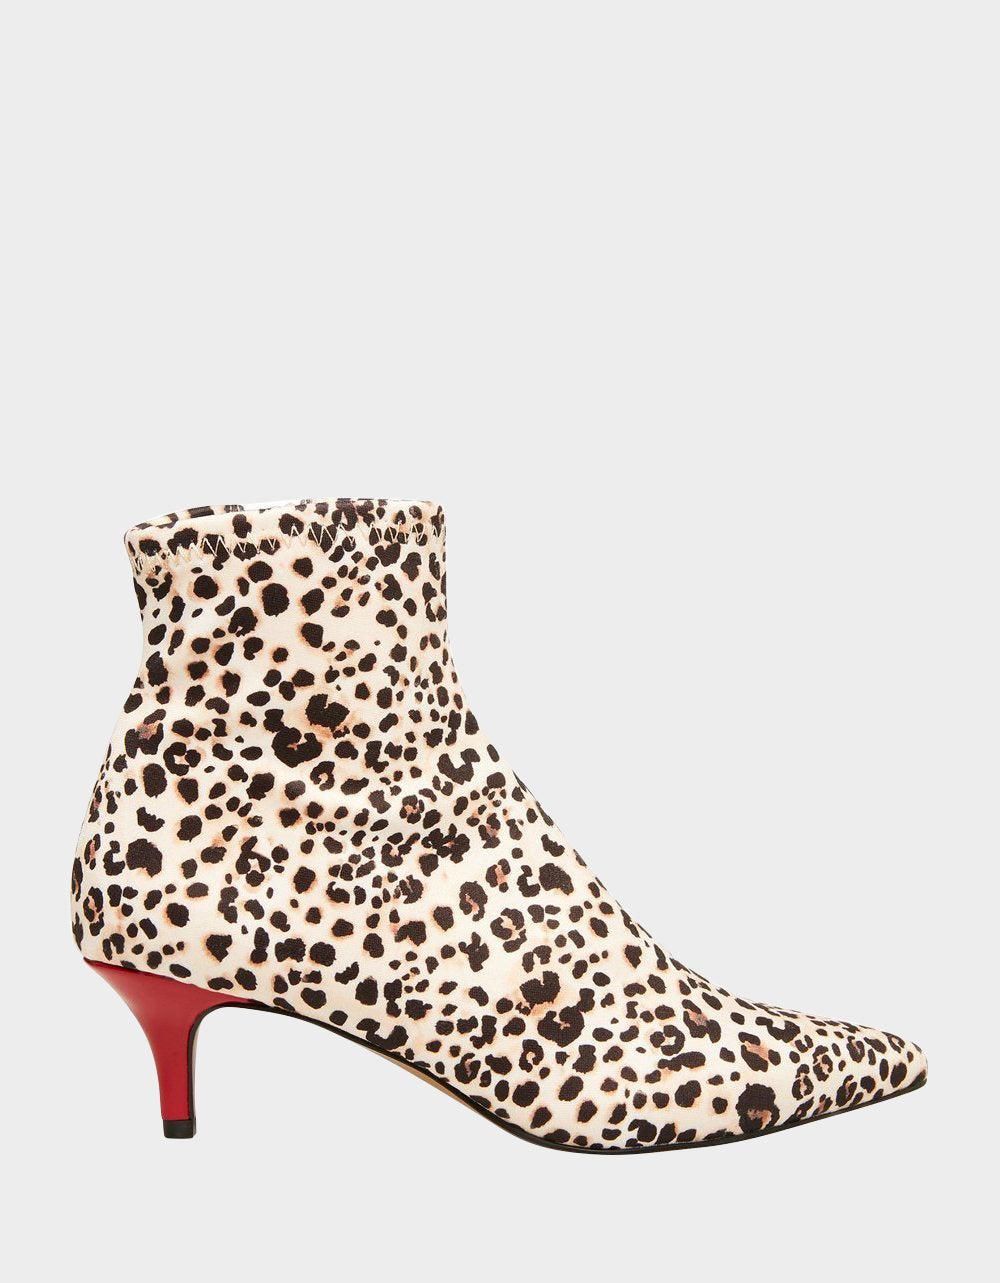 VERONA ANIMAL - SHOES - Betsey Johnson